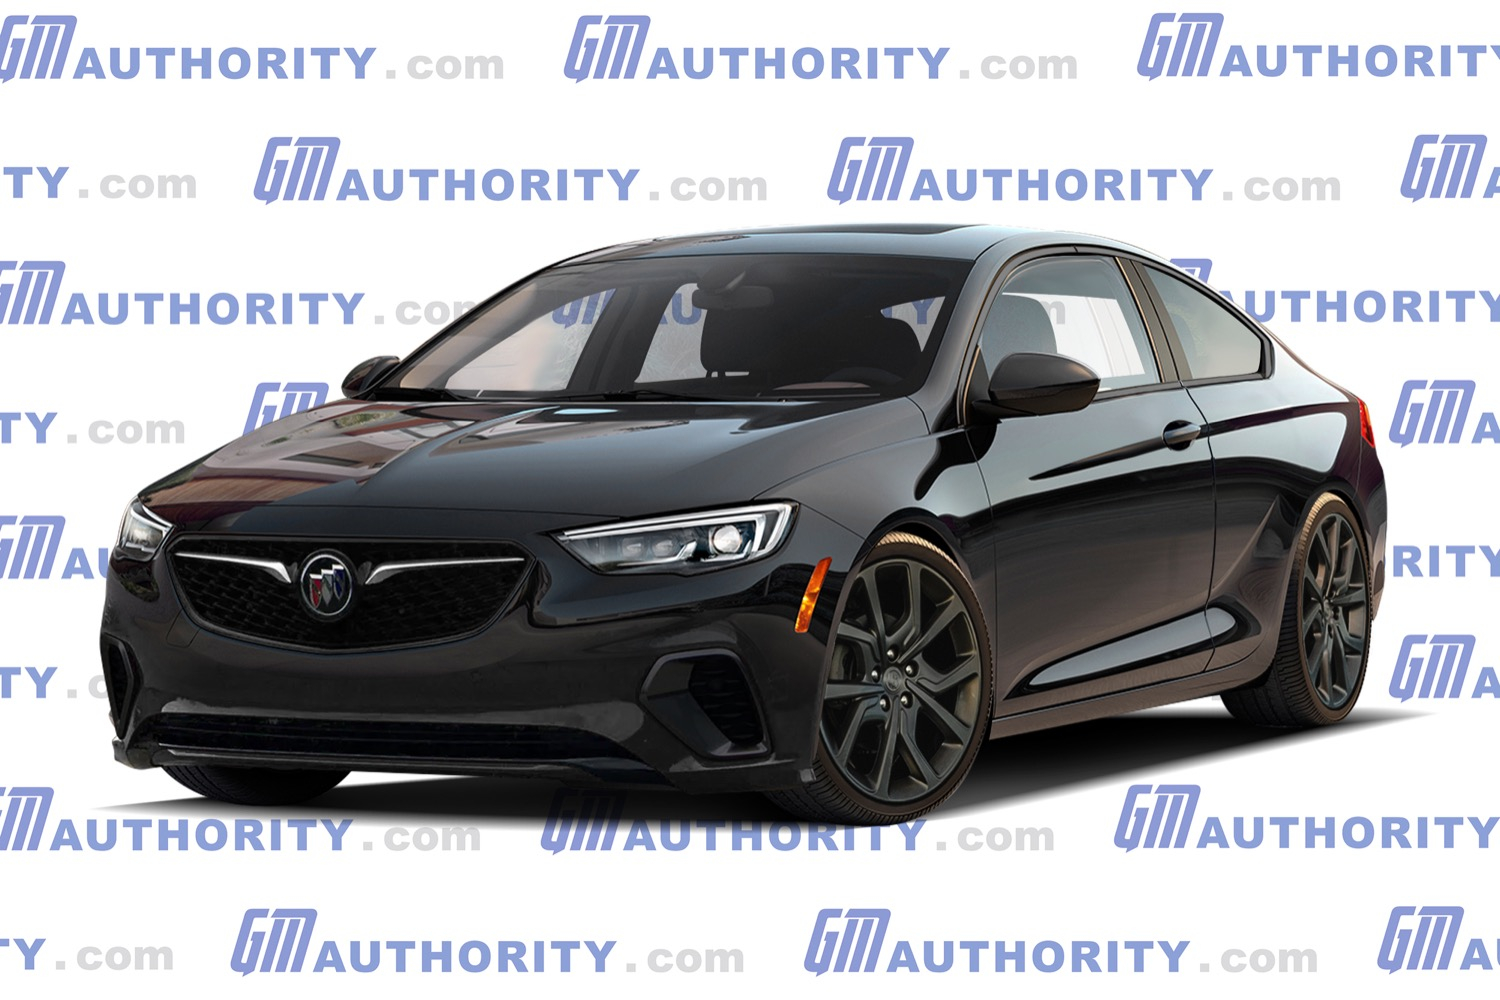 Modern Buick Regal Gnx Rendered | Gm Authority 2022 Buick Regal Discontinued, Release Date, Engine